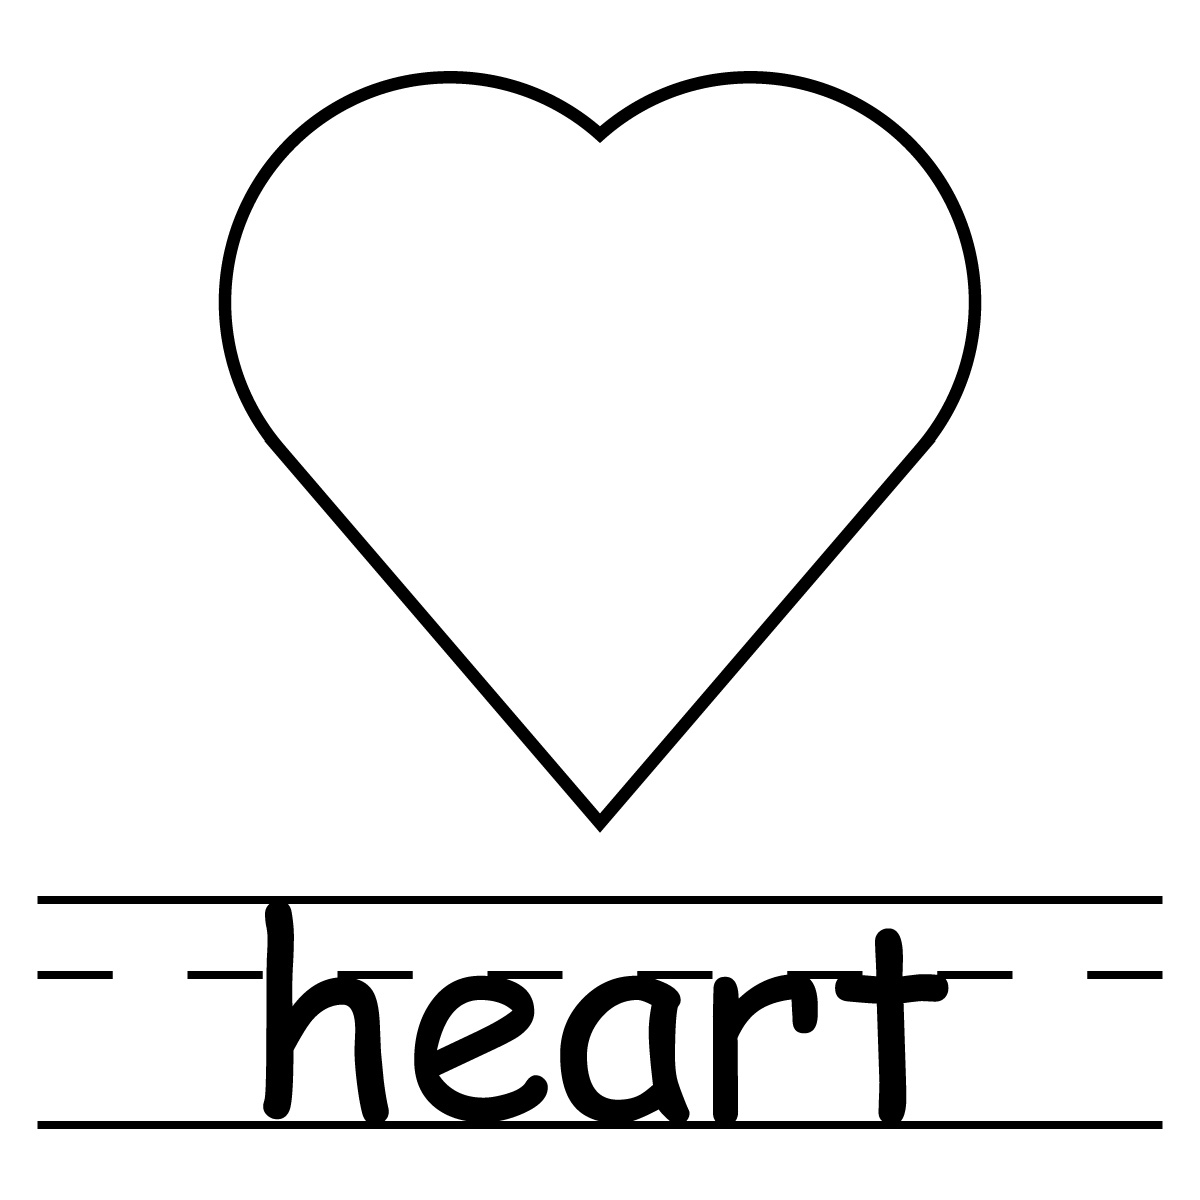 Multiple Hearts Clipart Black And White Clipart Panda